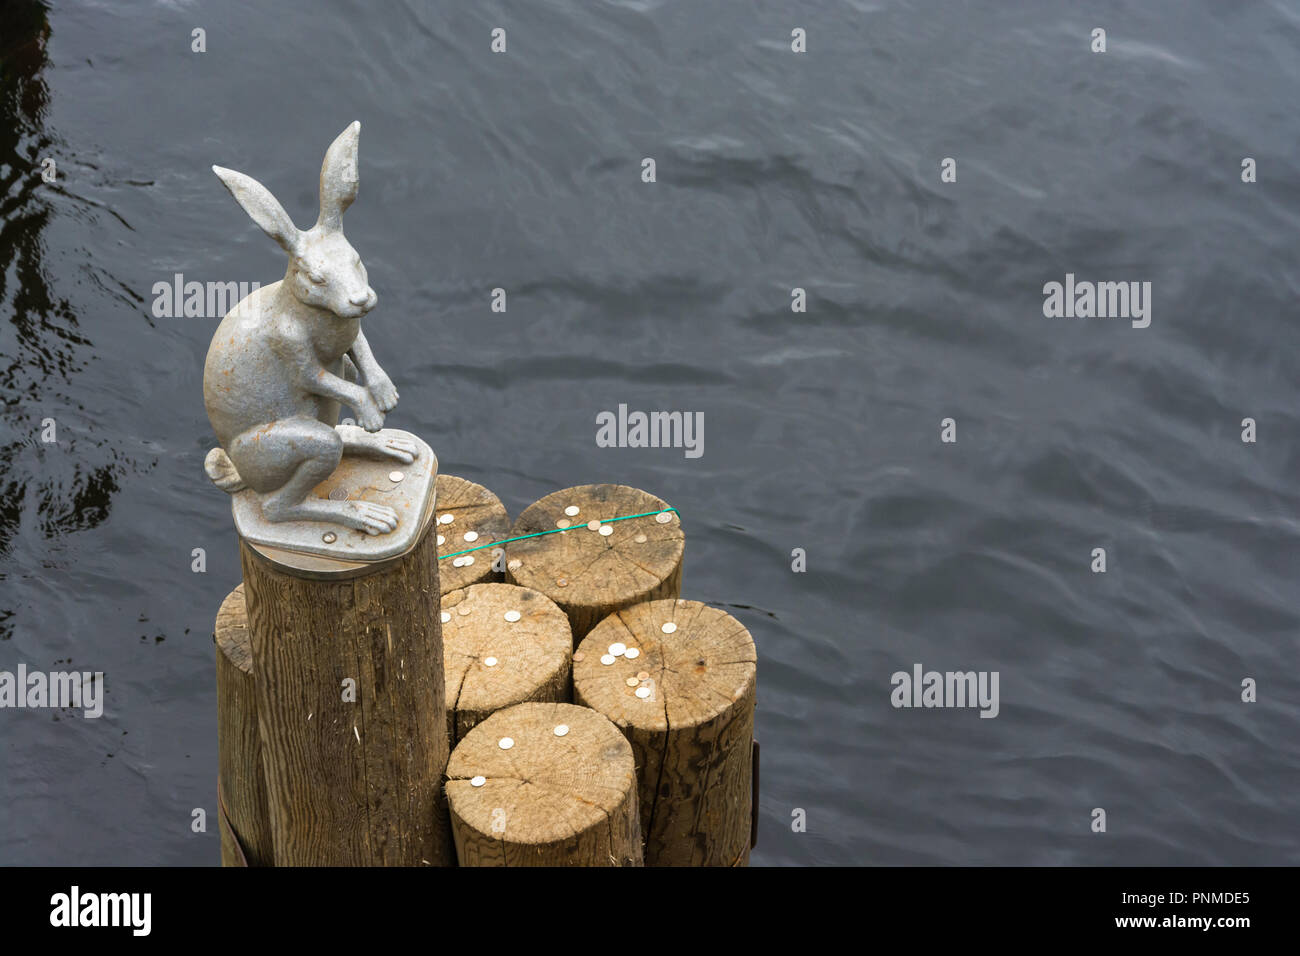 A little sculpture of a hare on the end of a log in the middle of the glistening water. - Stock Image